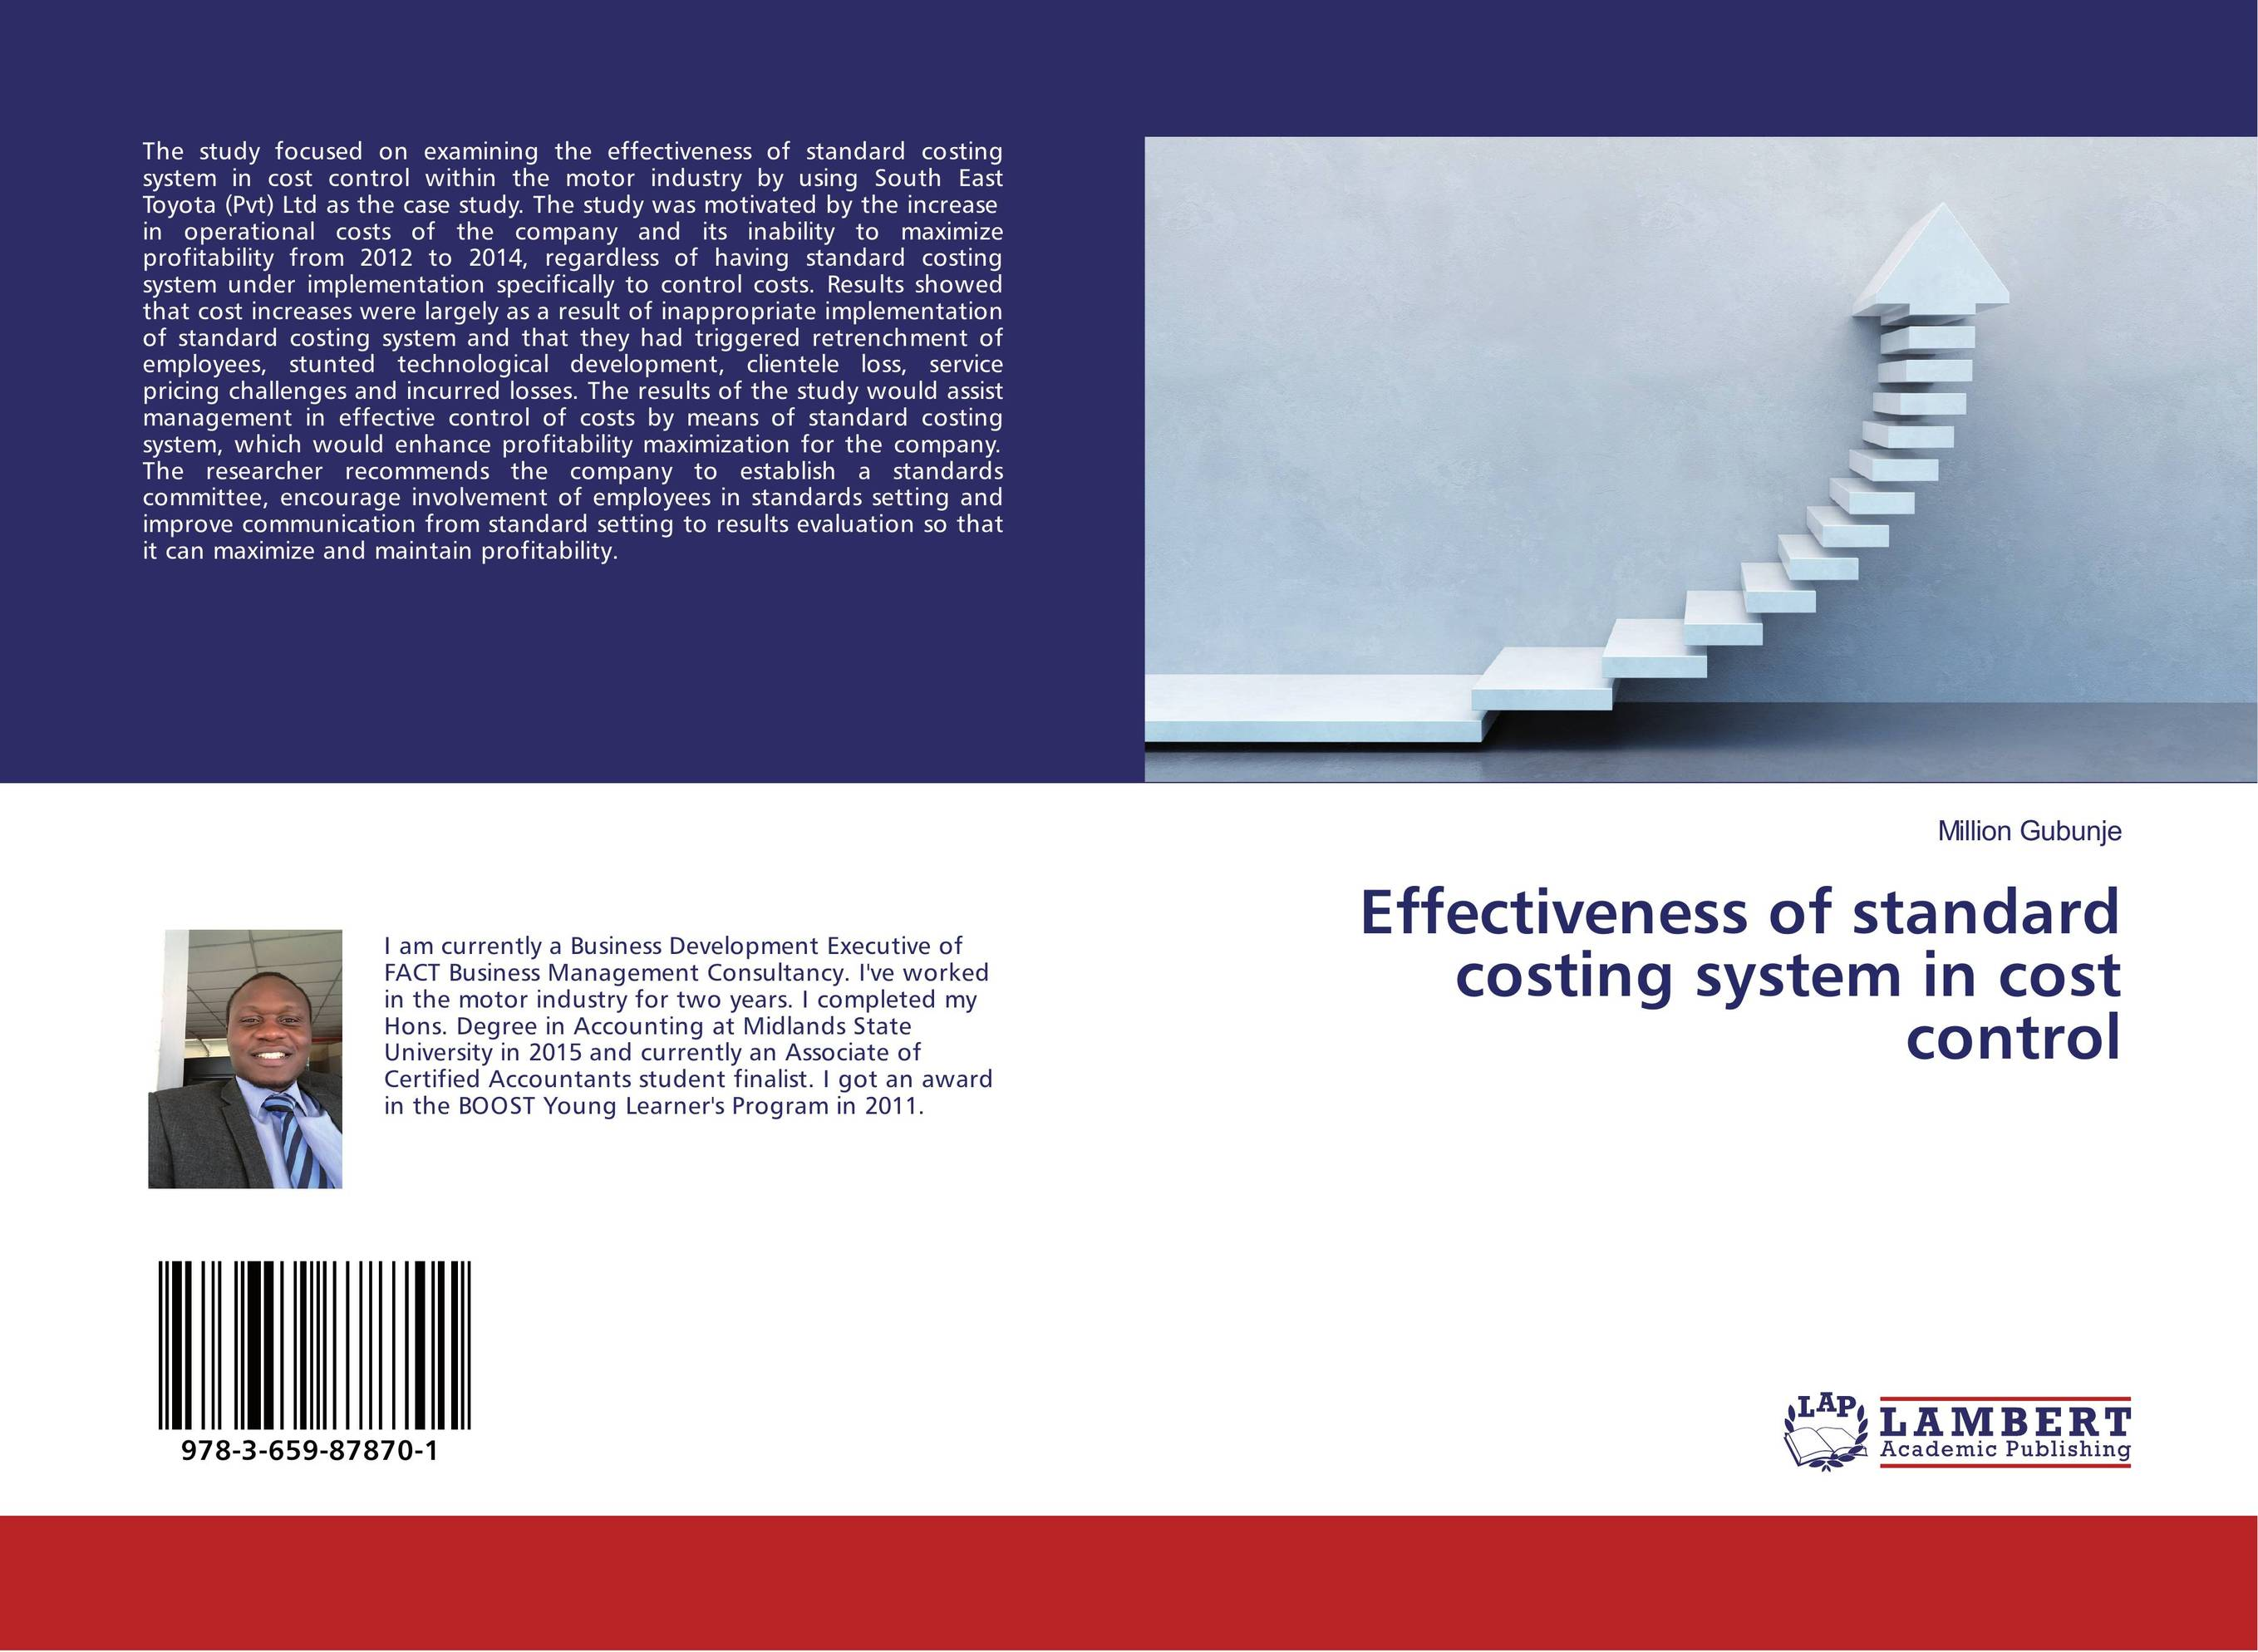 Effectiveness of standard costing system in cost control